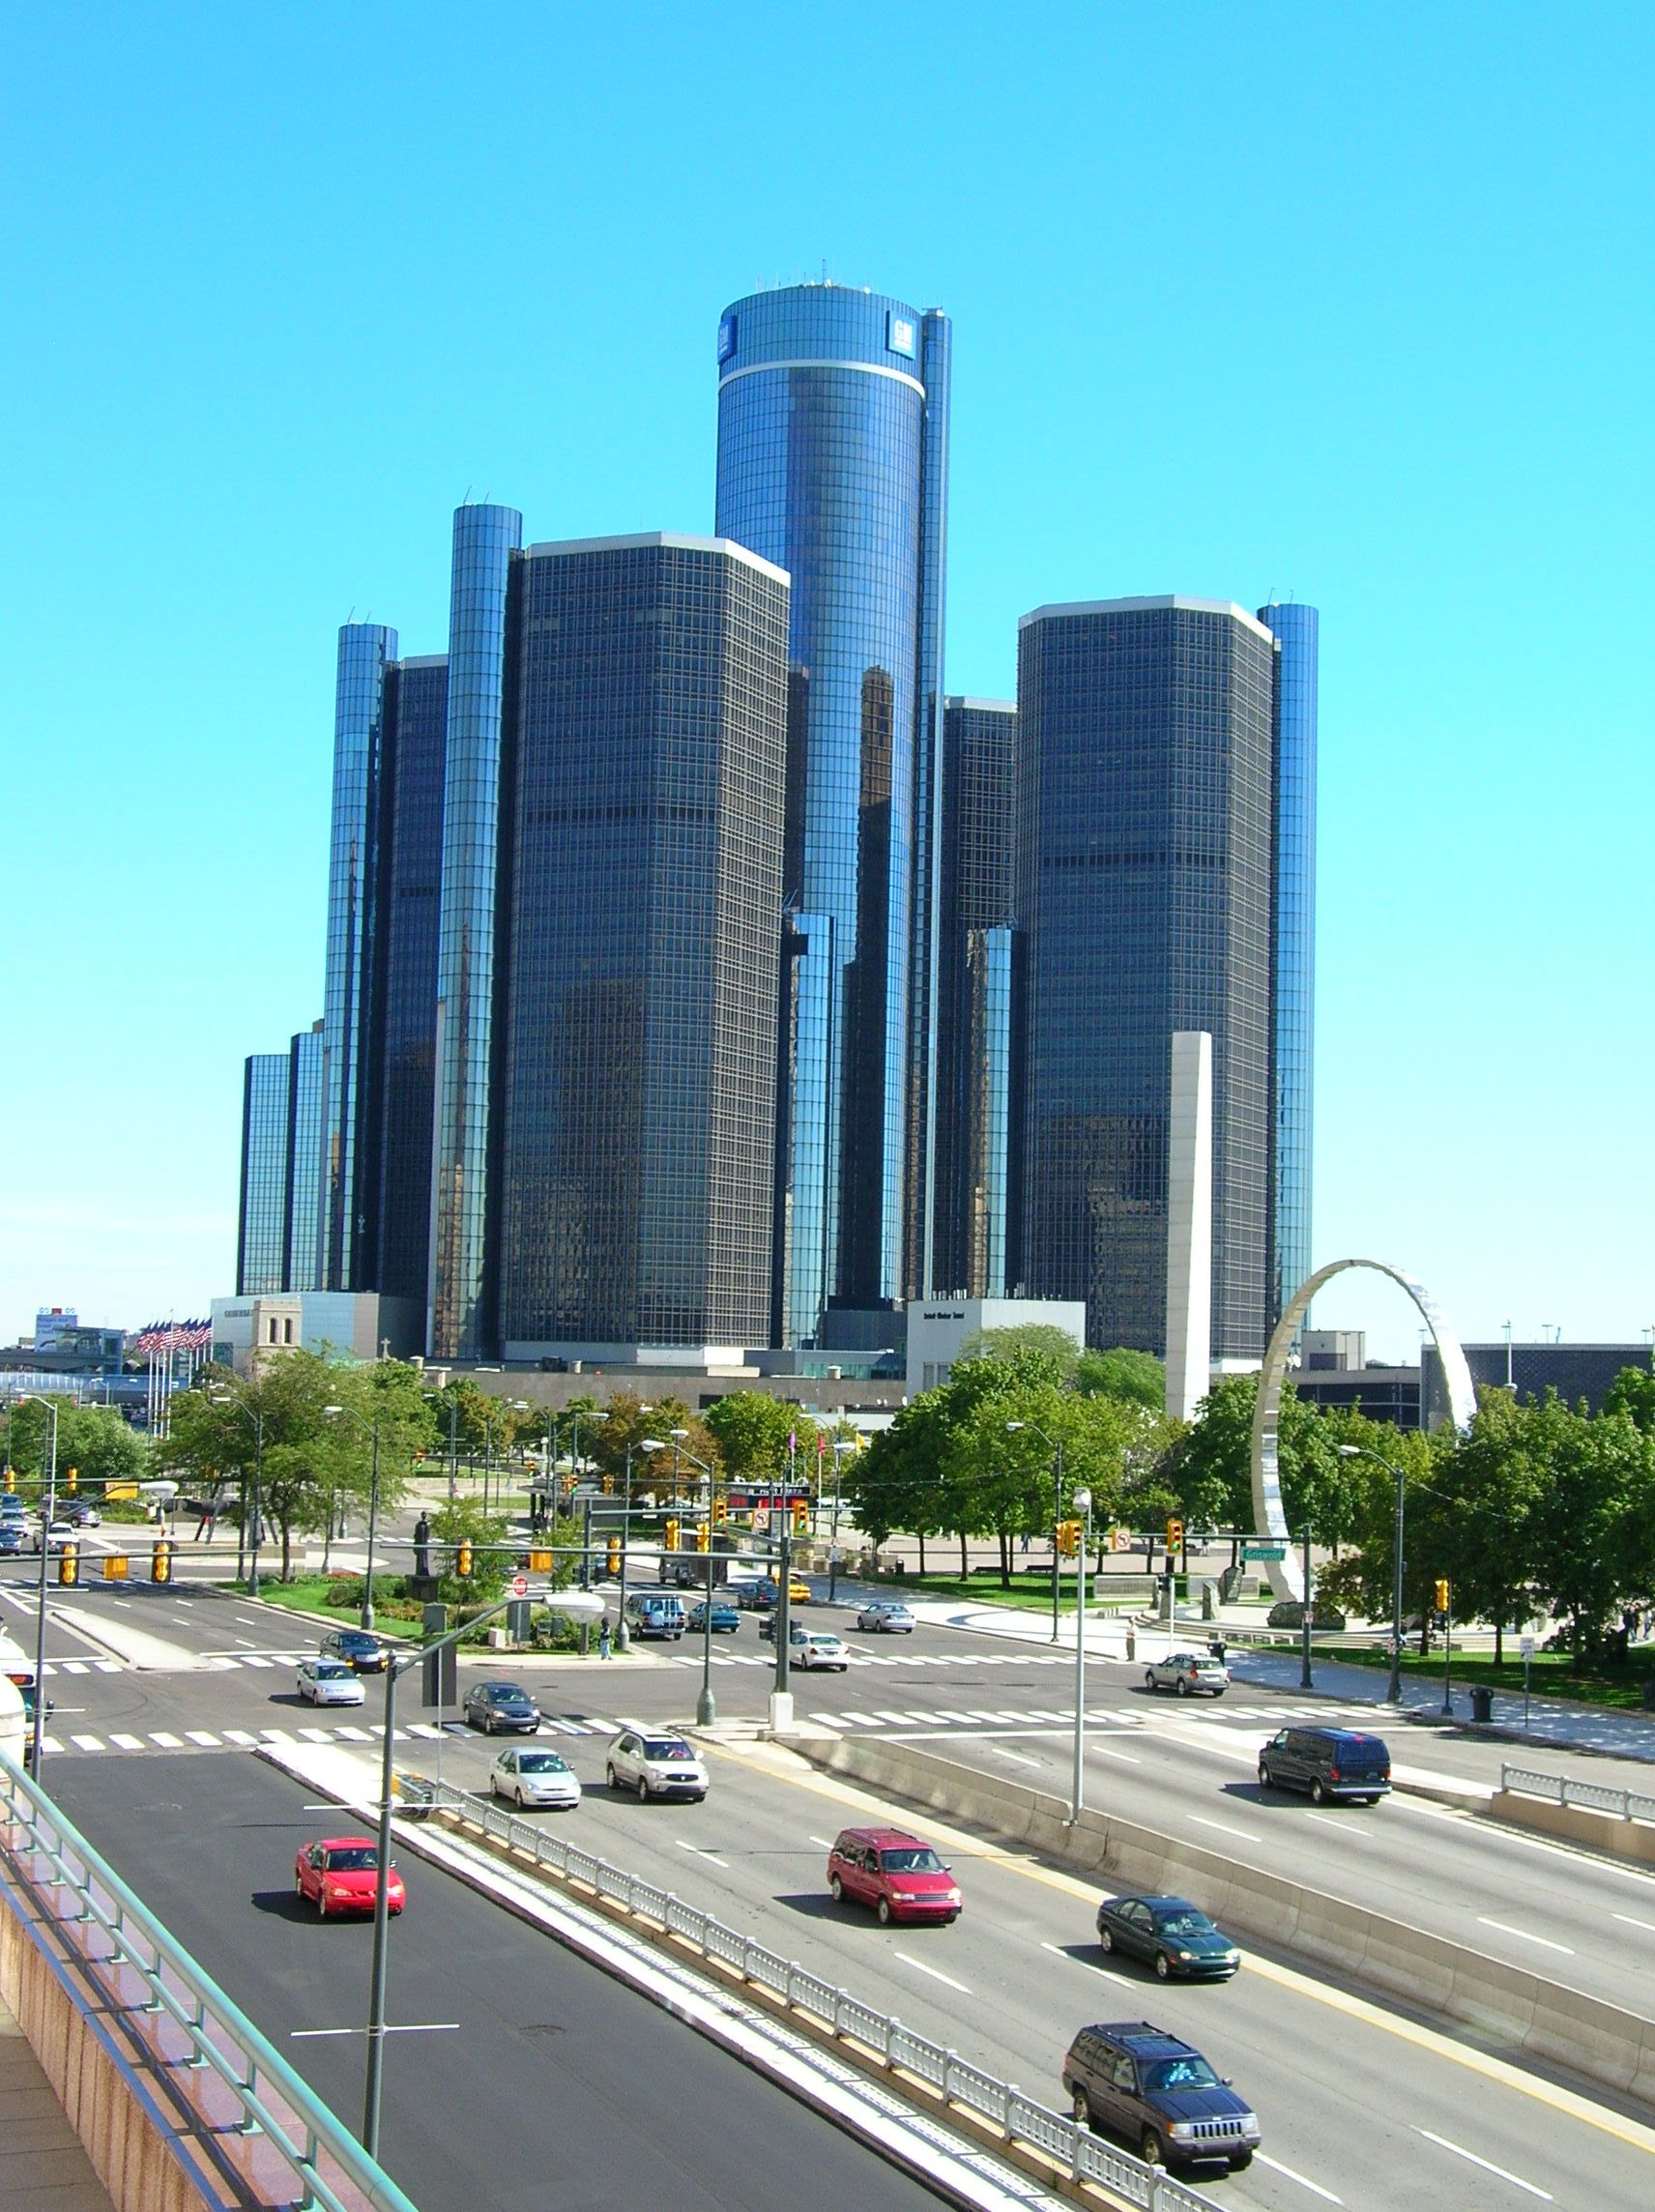 Detroit MI. Renaissance center. Shopped there, worked ...